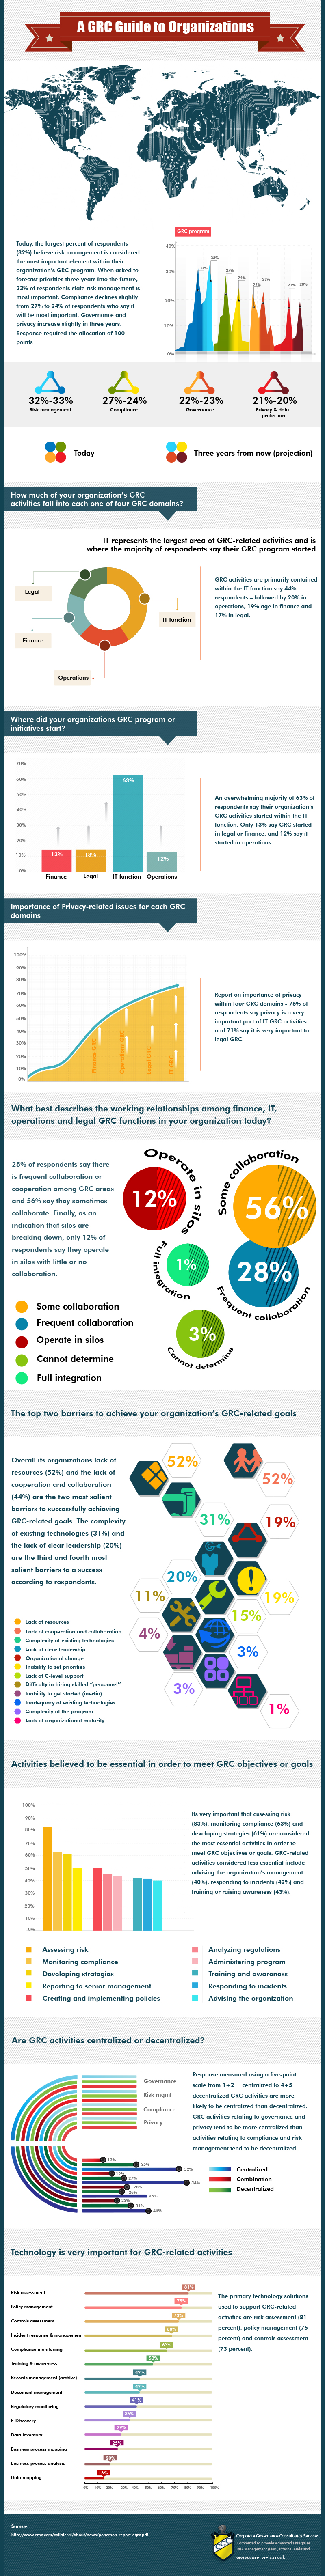 A GRC Guide (Governance, Risk and Compliance) to Organizations